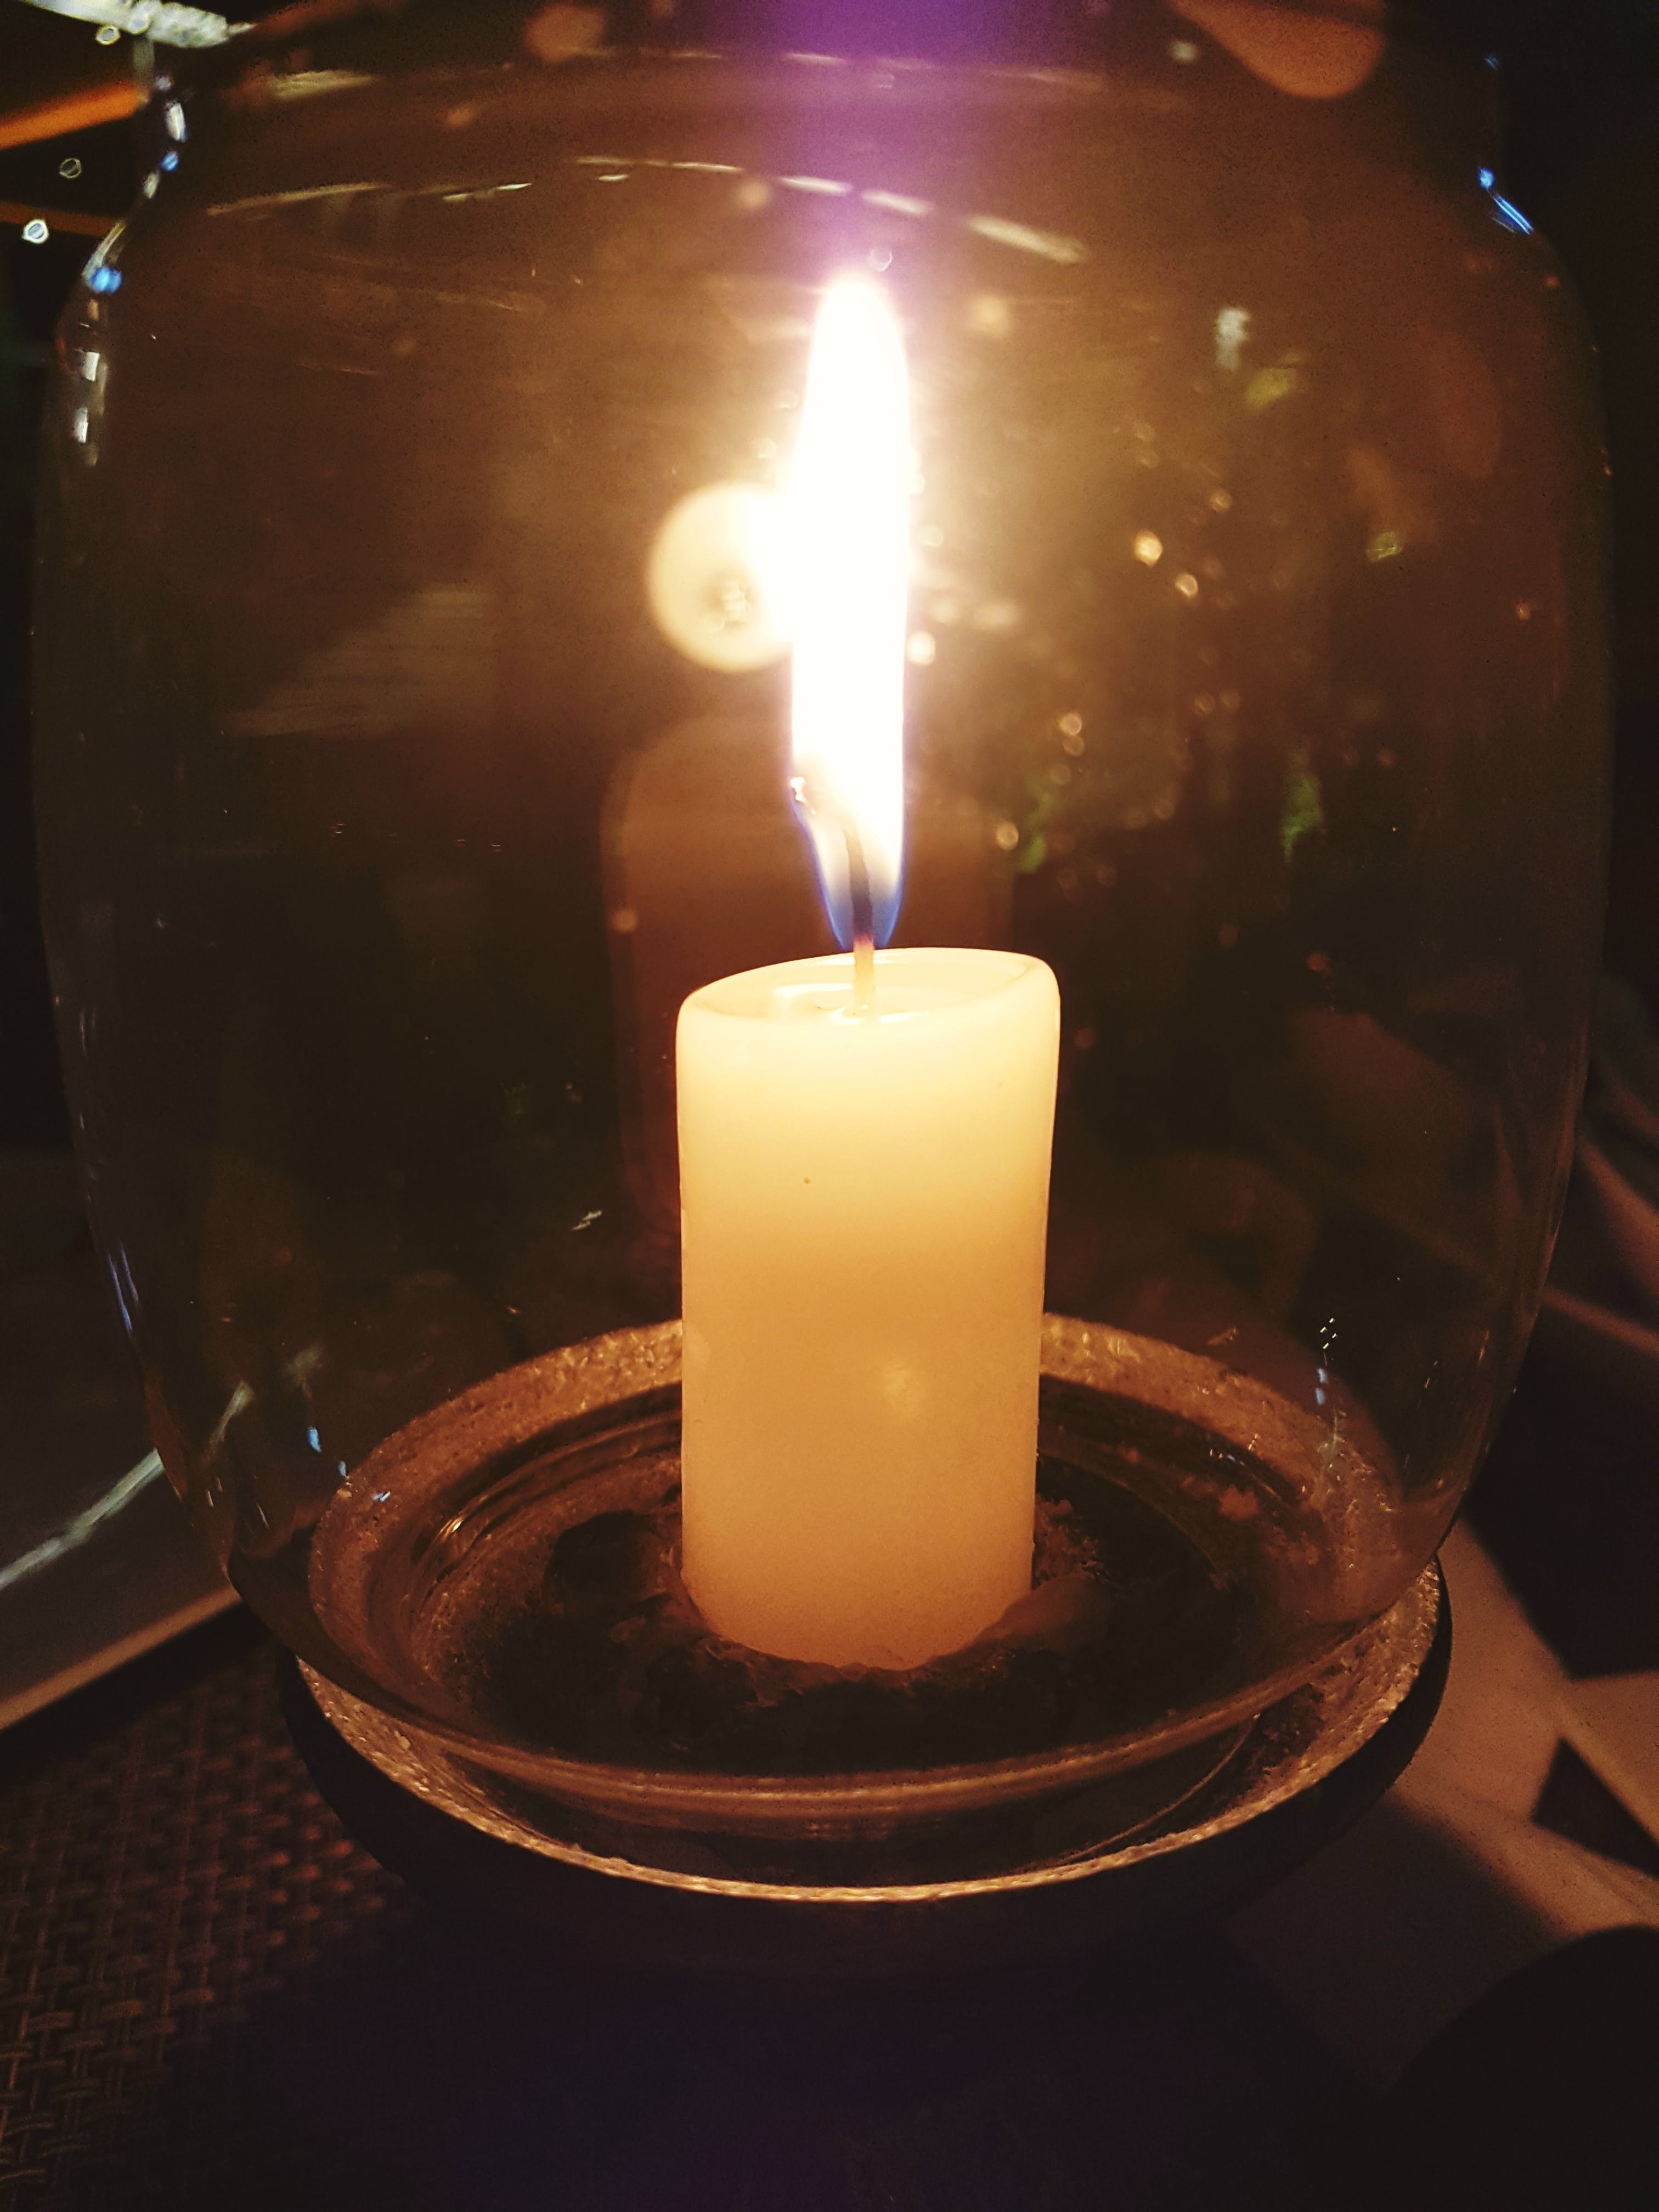 Free stock photo of advent, candle, candle wicks, candlelight